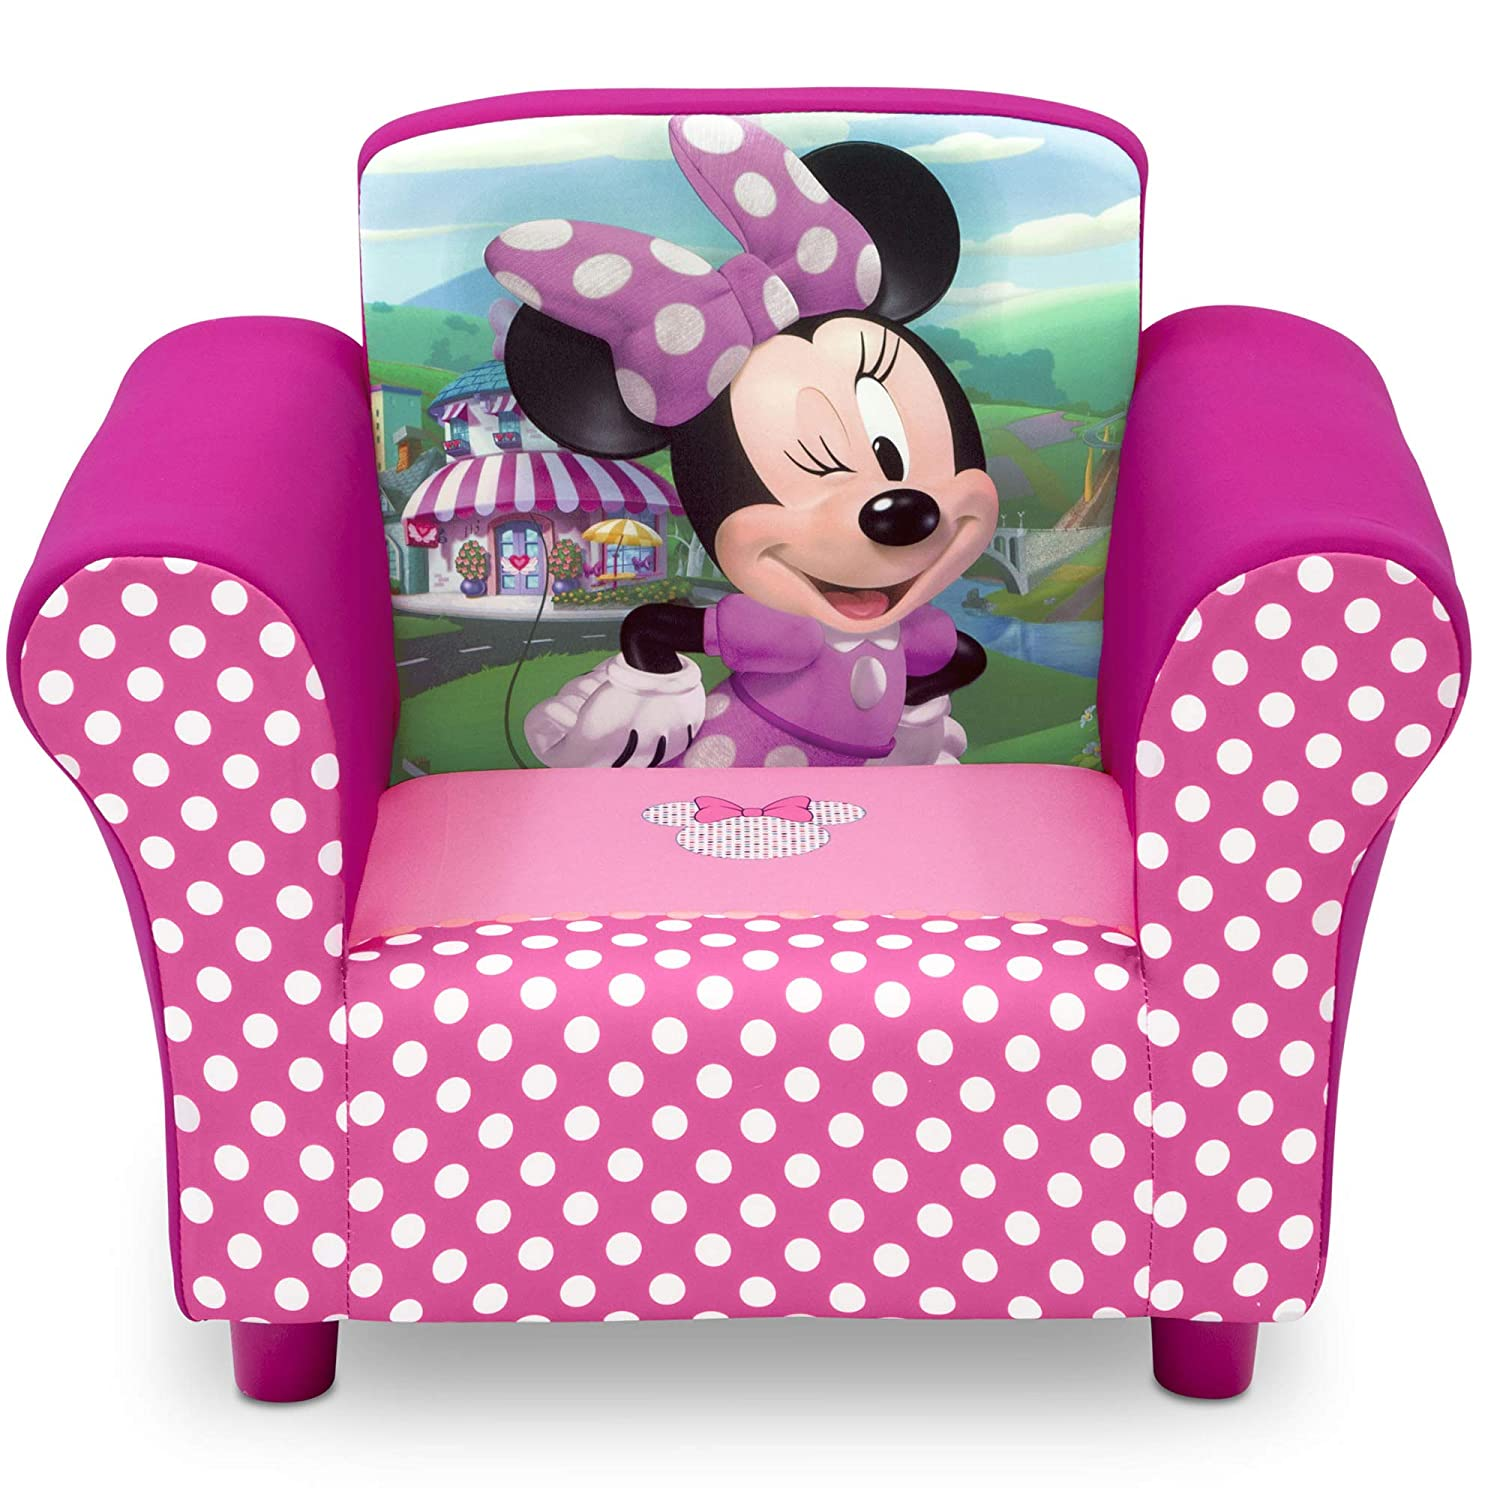 Strange Delta Children Disney Minnie Mouse Upholstered Chair Pdpeps Interior Chair Design Pdpepsorg